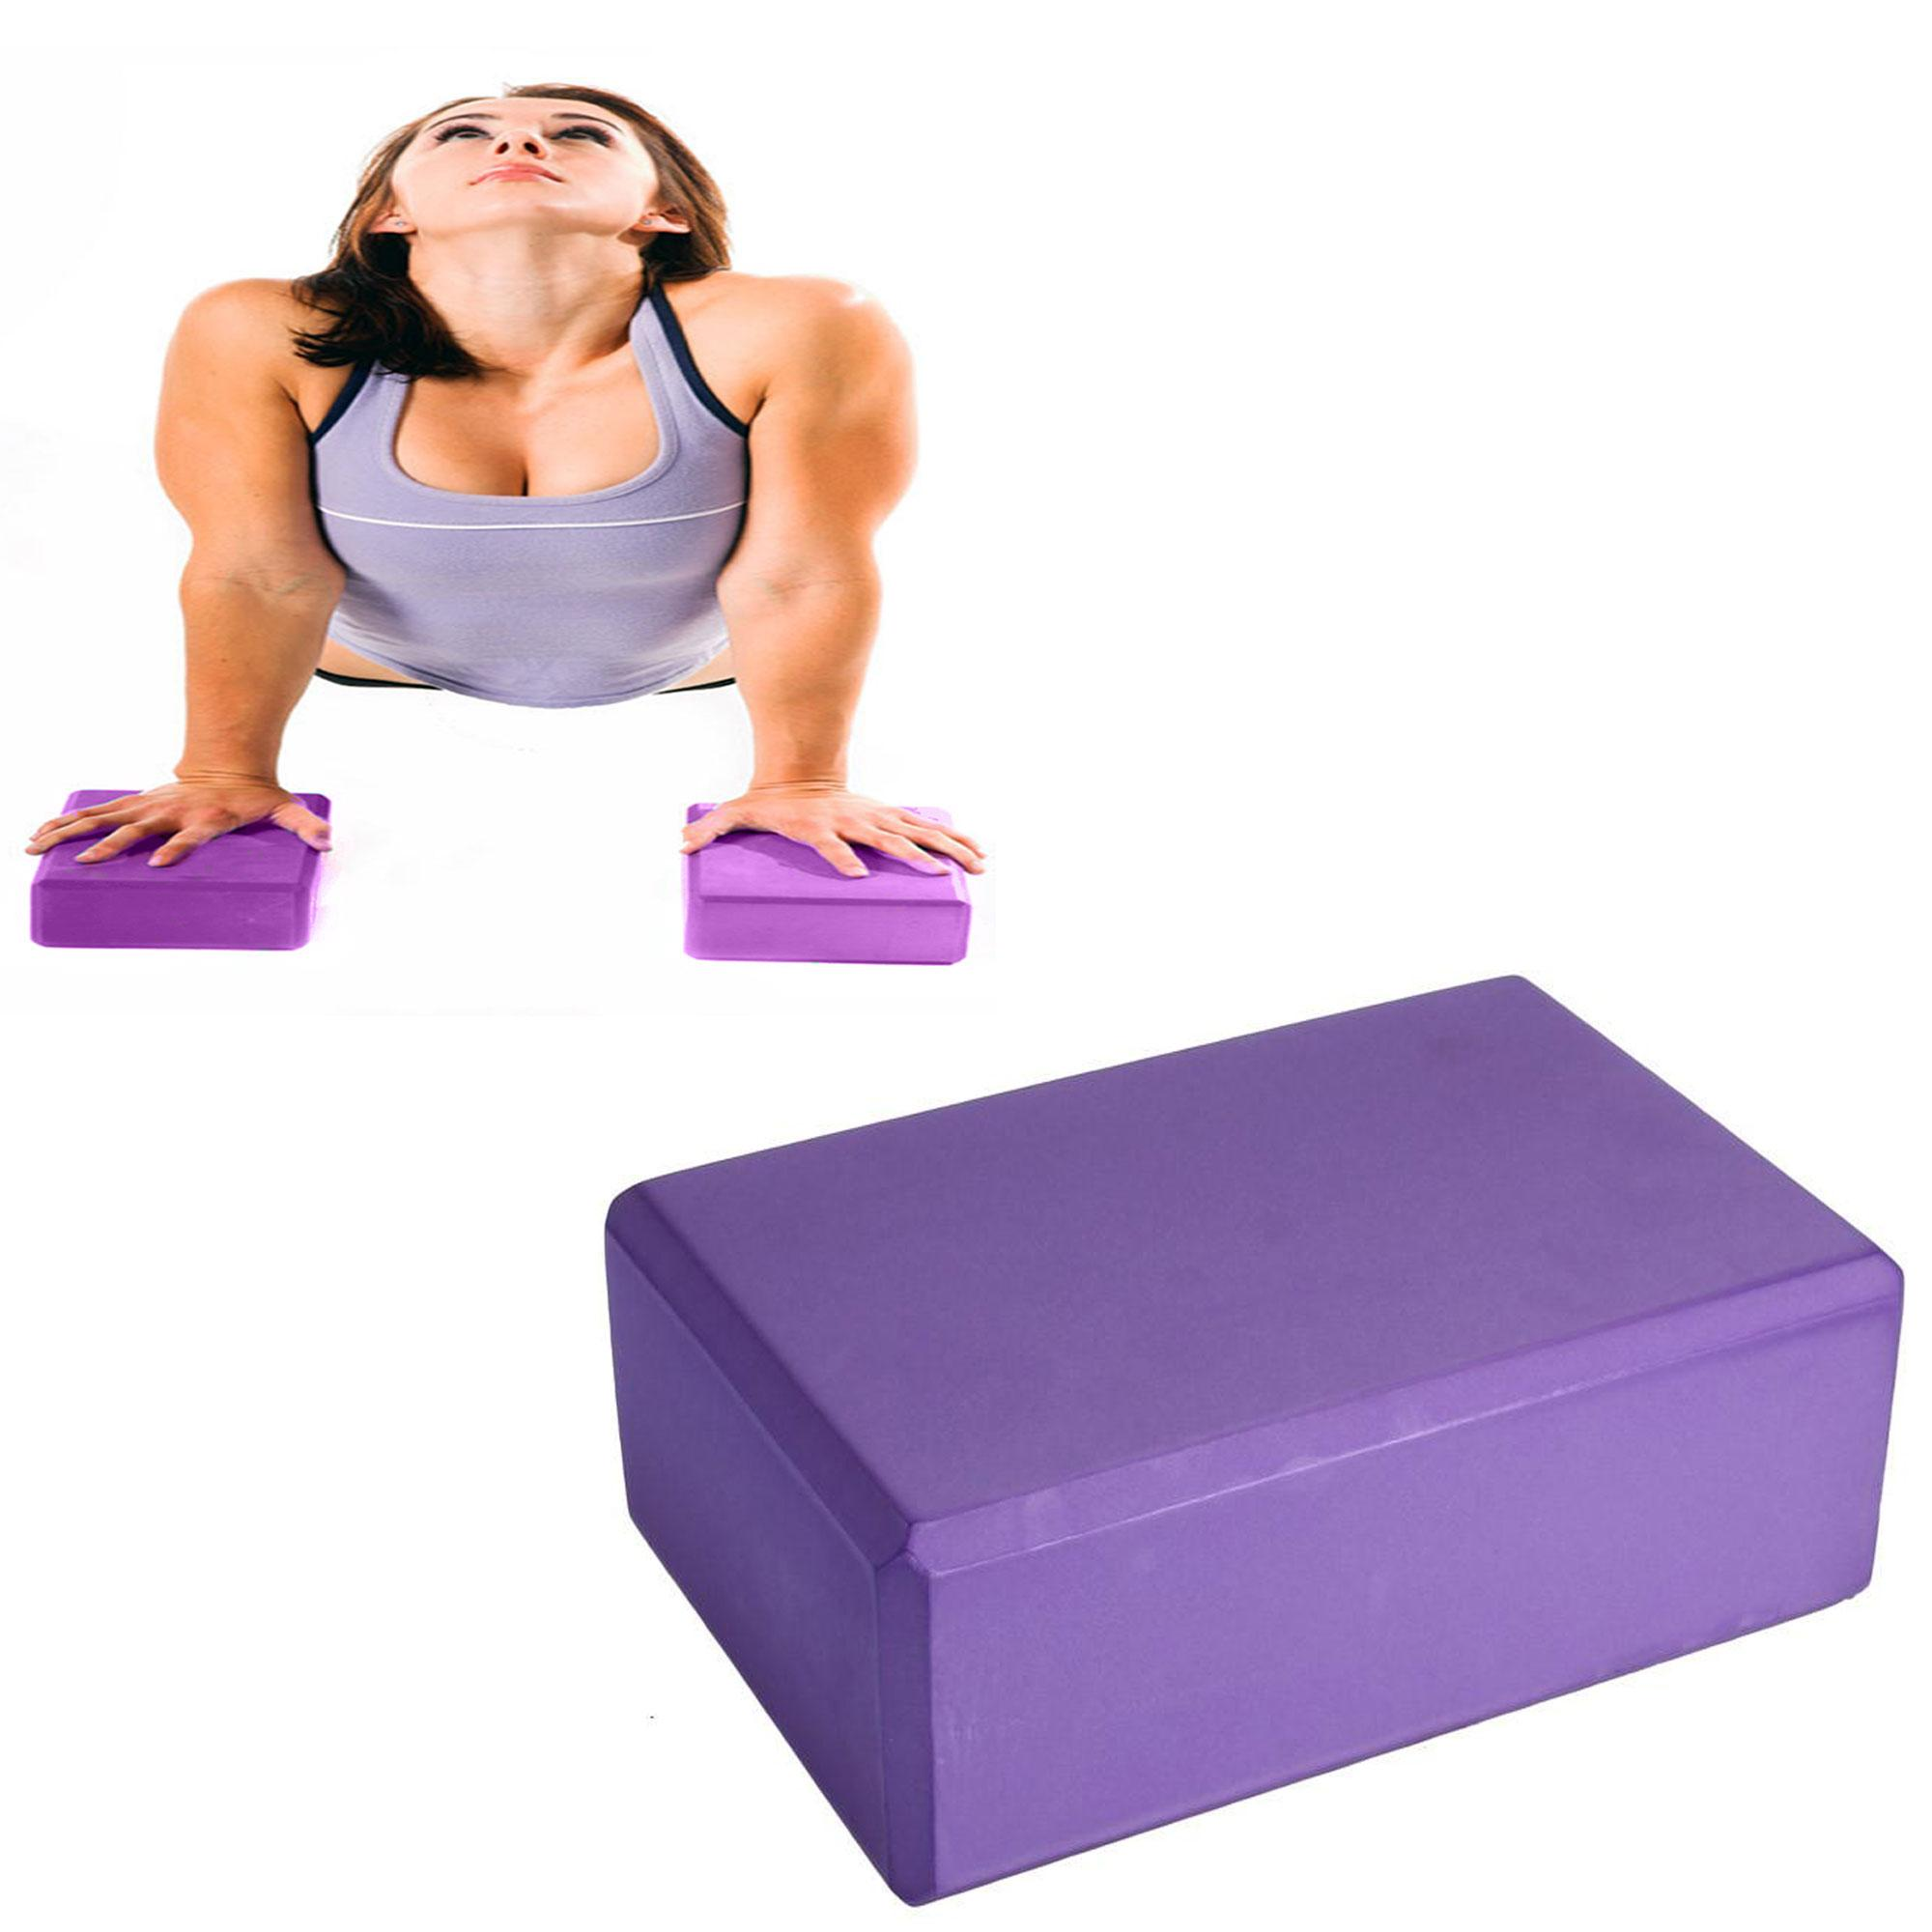 Yoga Products Online Brands, Prices